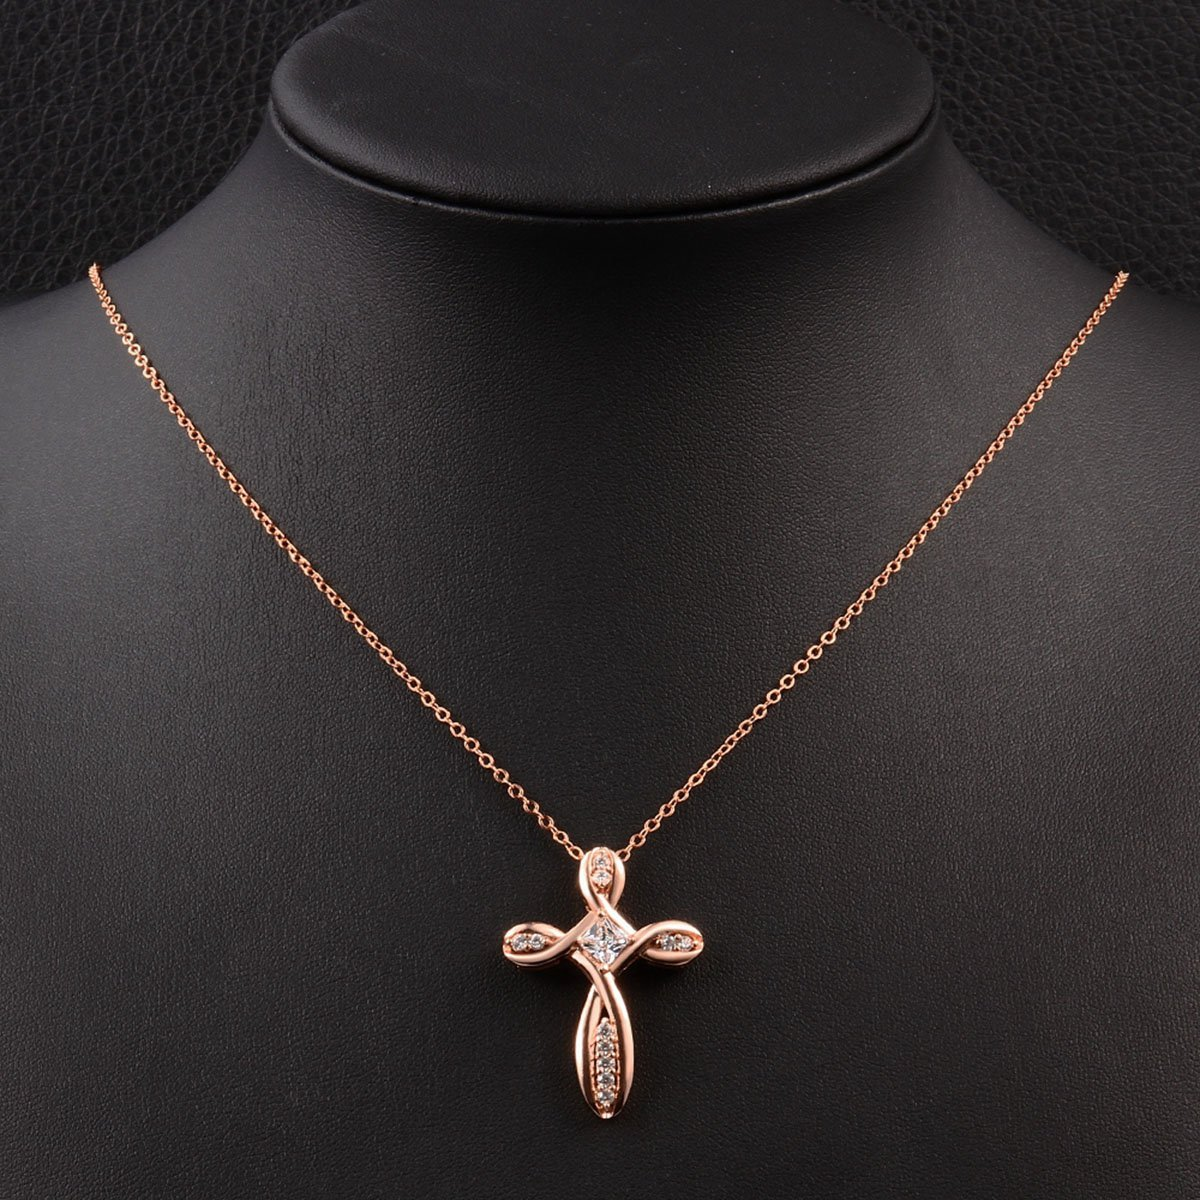 Rose Gold Cross Pendant Necklace for Women Infinity Zircon Crystal Jewelry